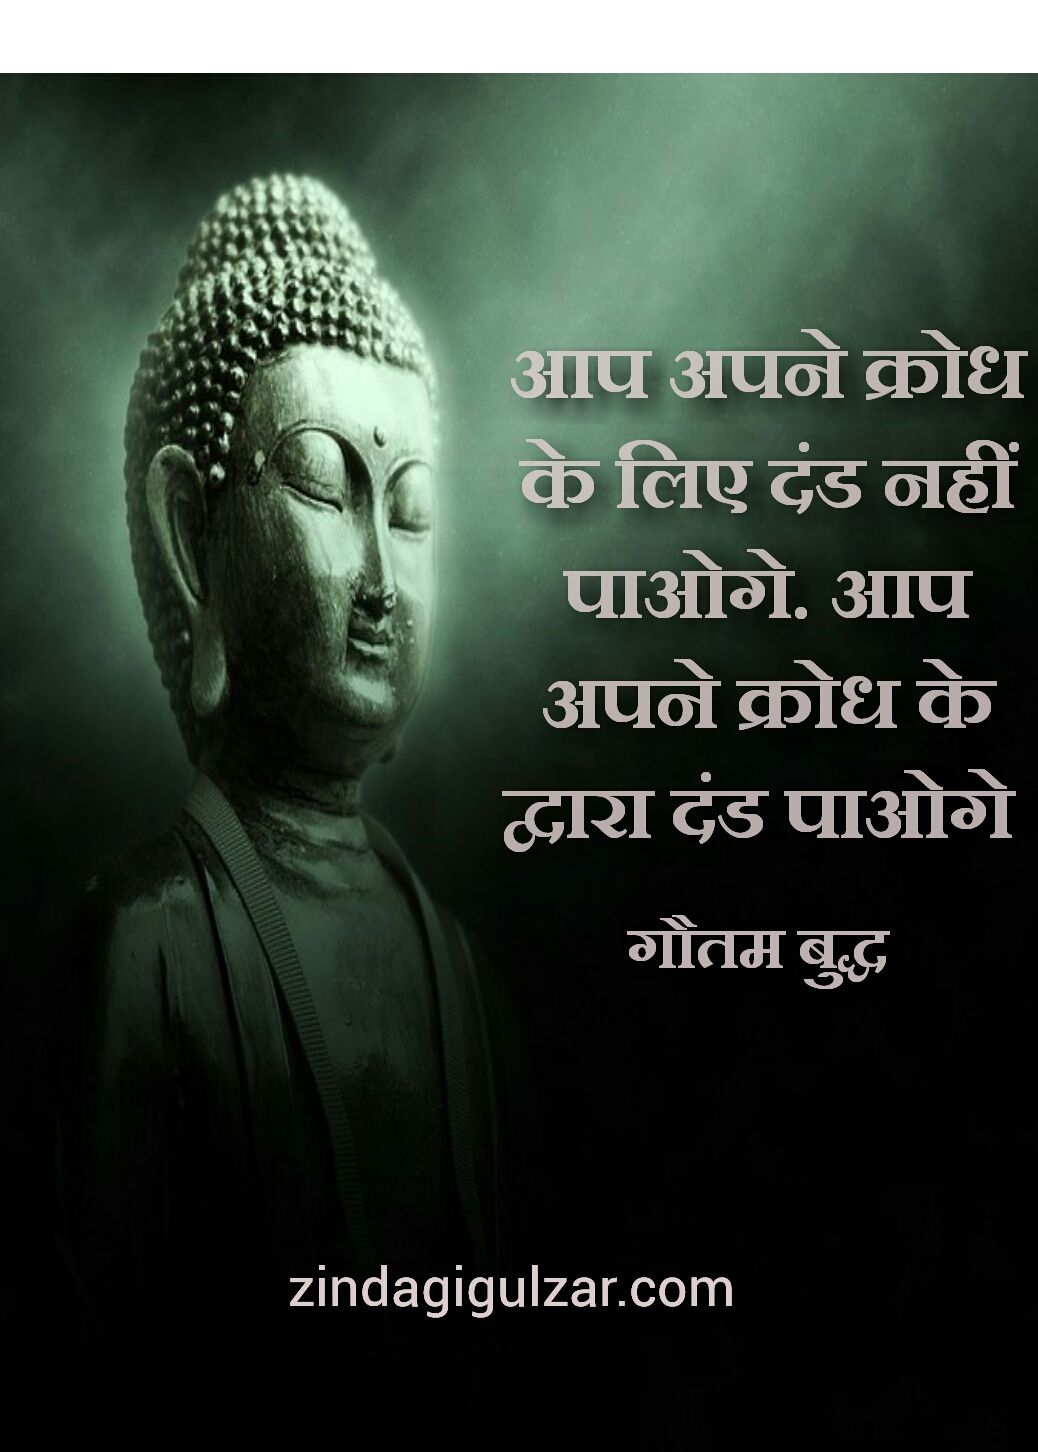 Lord Gautam Buddha Quotes In Hindi Sprituality Pinterest